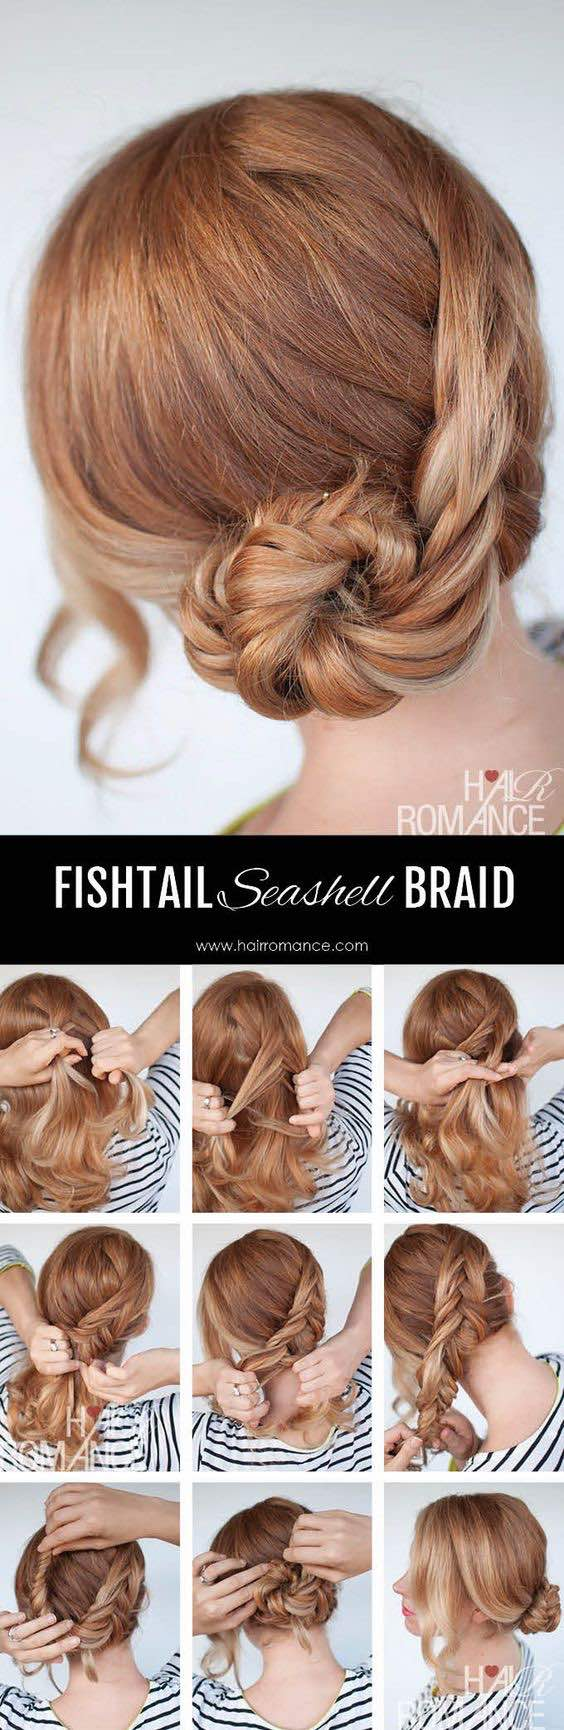 wedding-hairstyle-tutorial-1-02102016-km